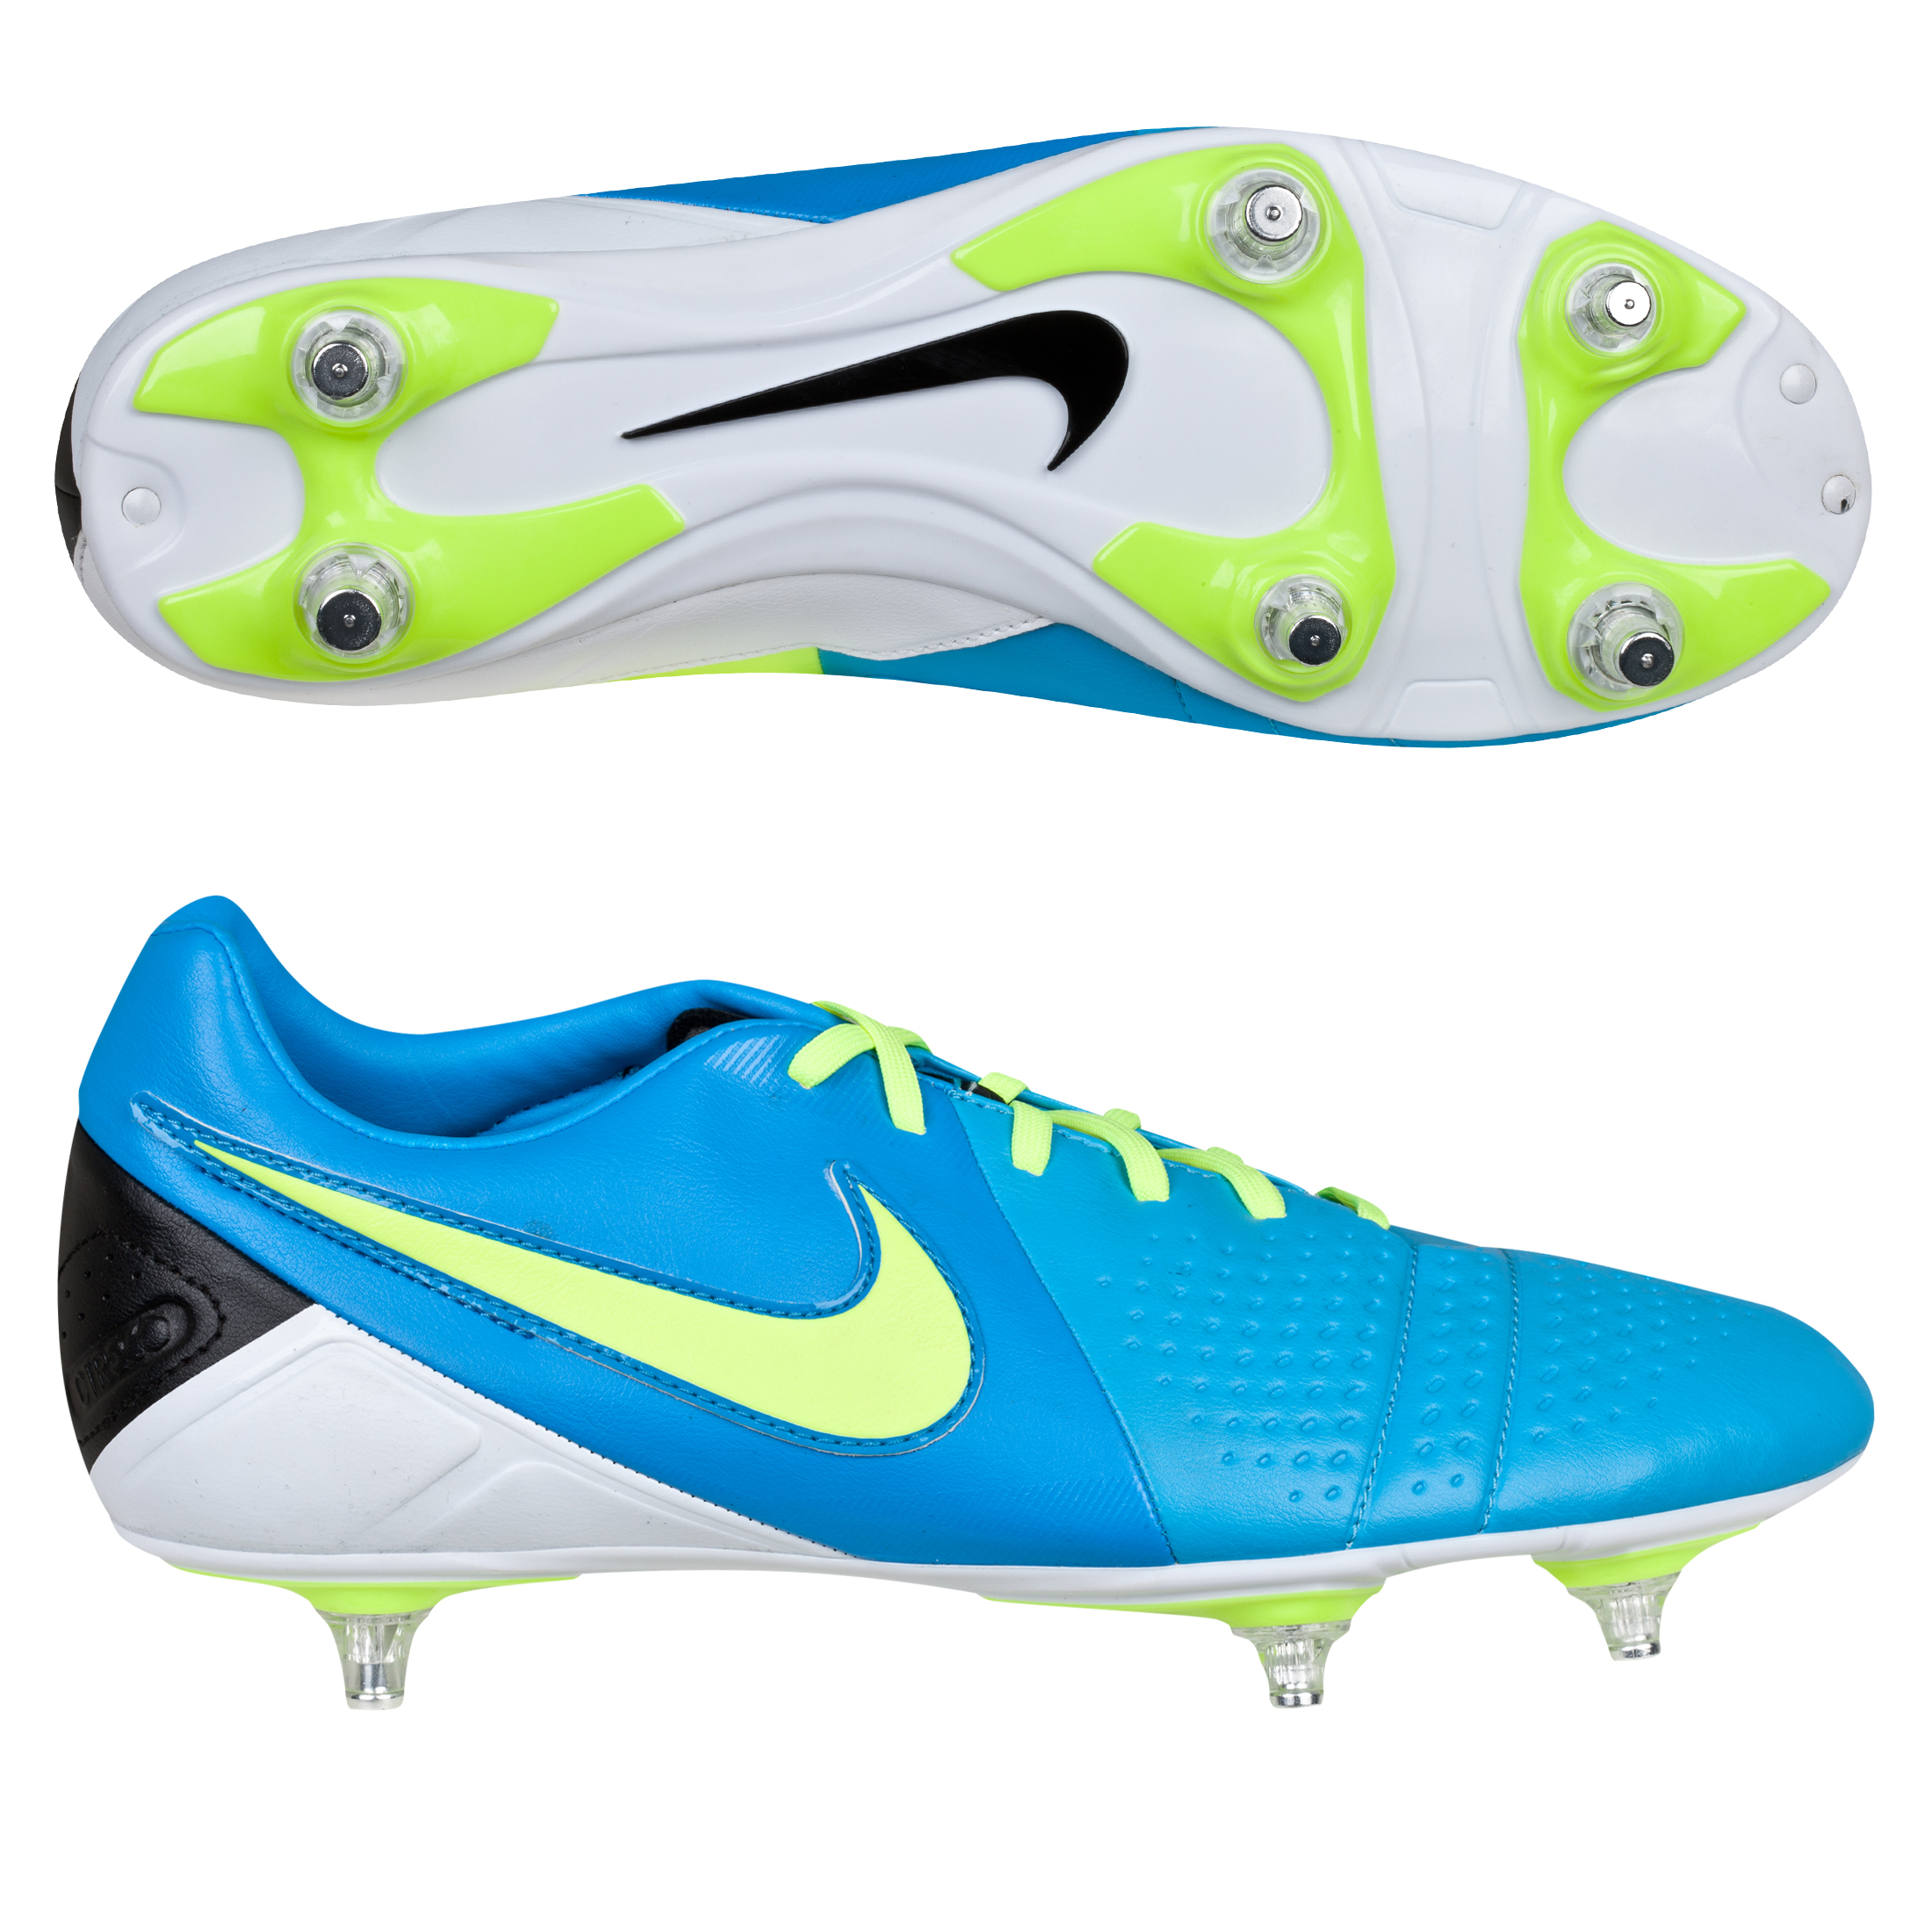 Nike CTR360 Libretto III Soft Ground Football Boots Blue